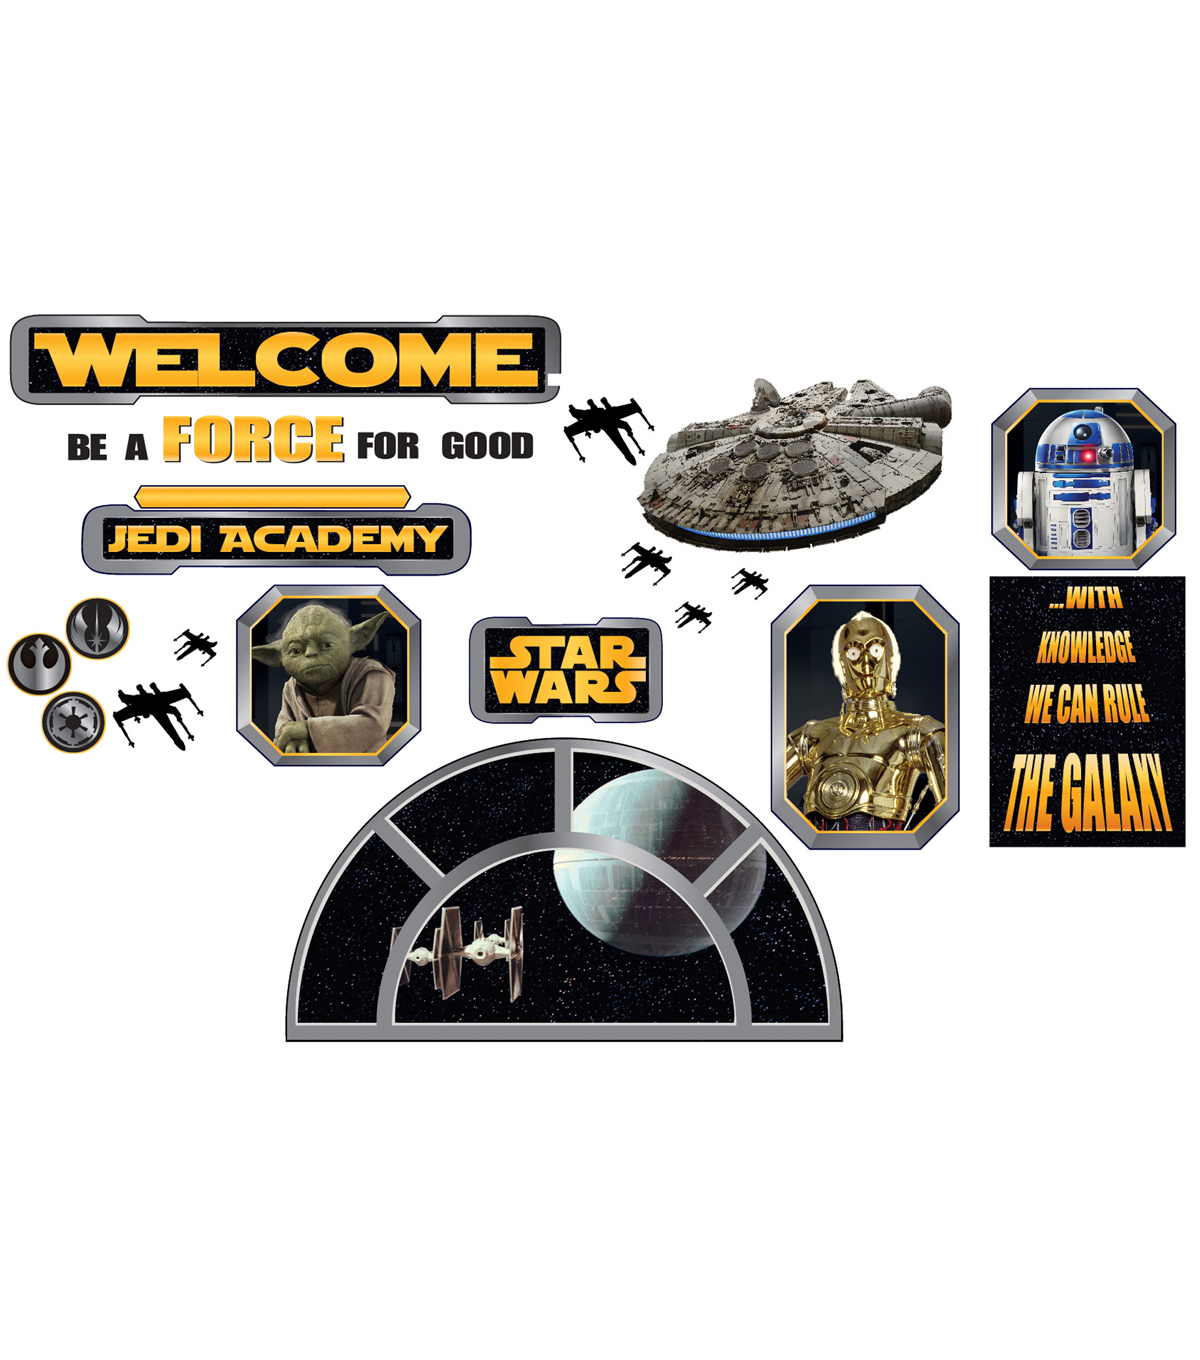 Eureka Star Wars Welcome to the Galaxy Bulletin Board Set, 2 Sets